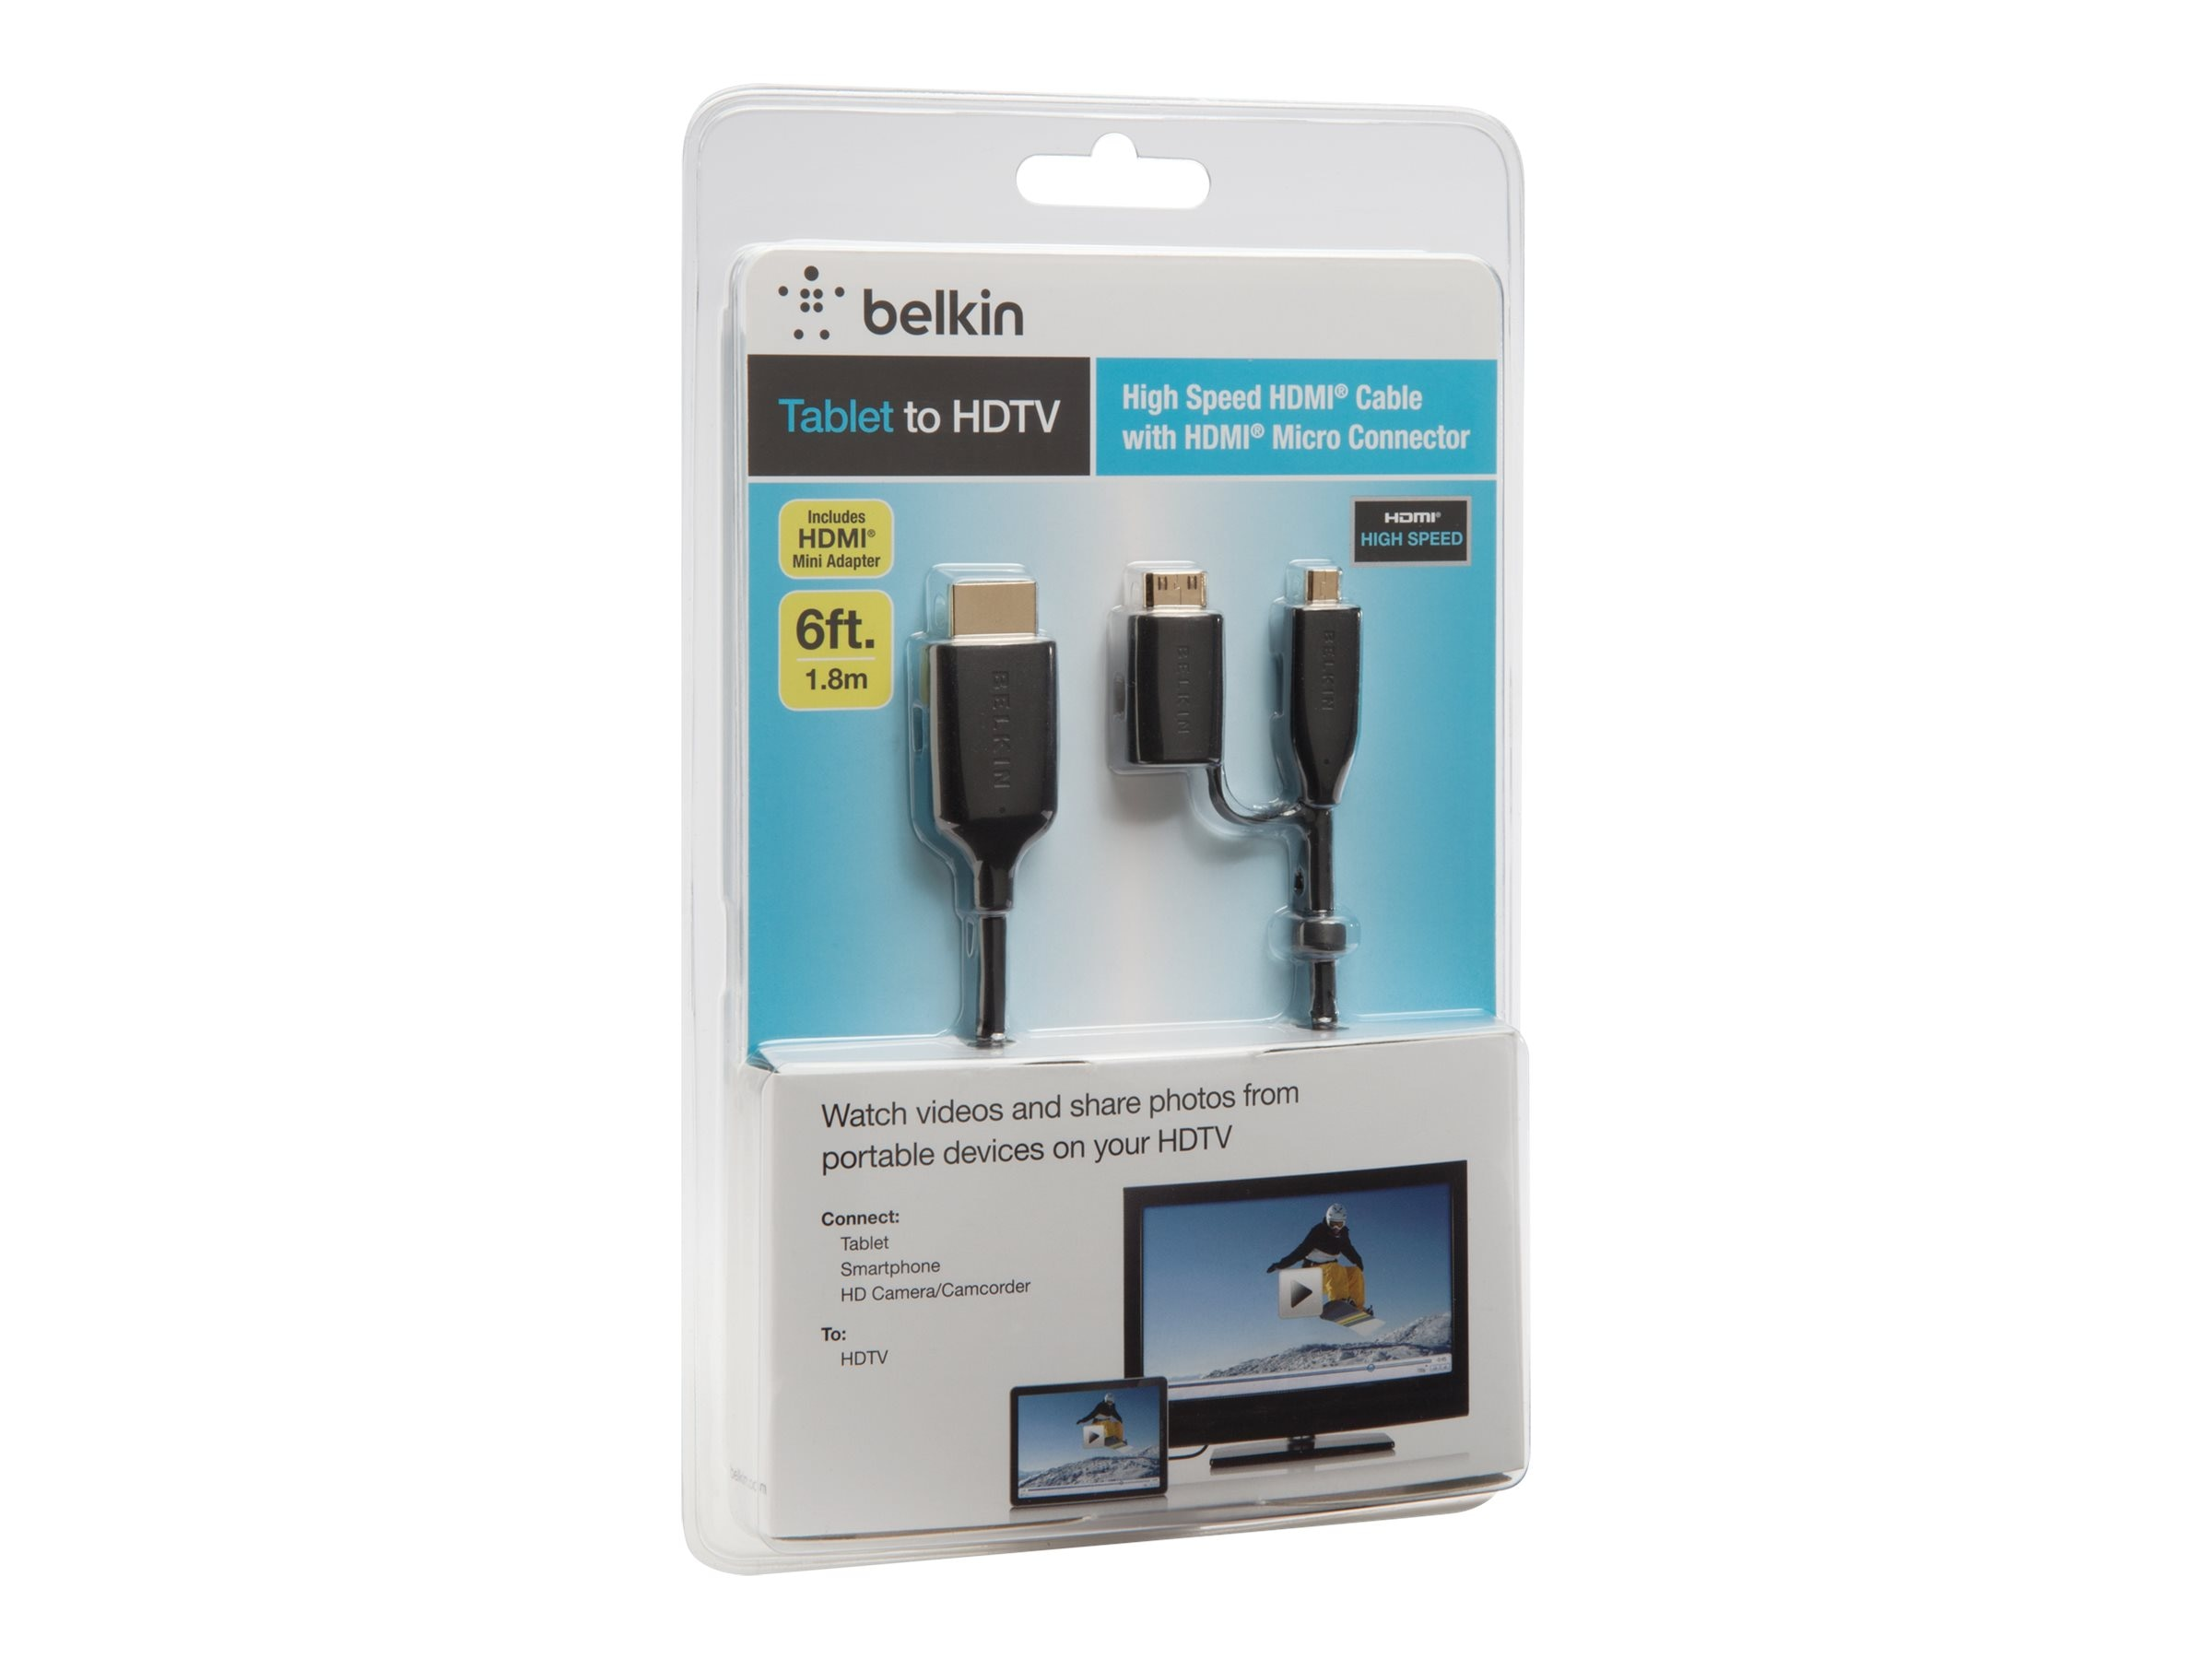 Belkin ProAV HDMI to MicroHDMI (M-M) Cable, 6ft, AV10120-06